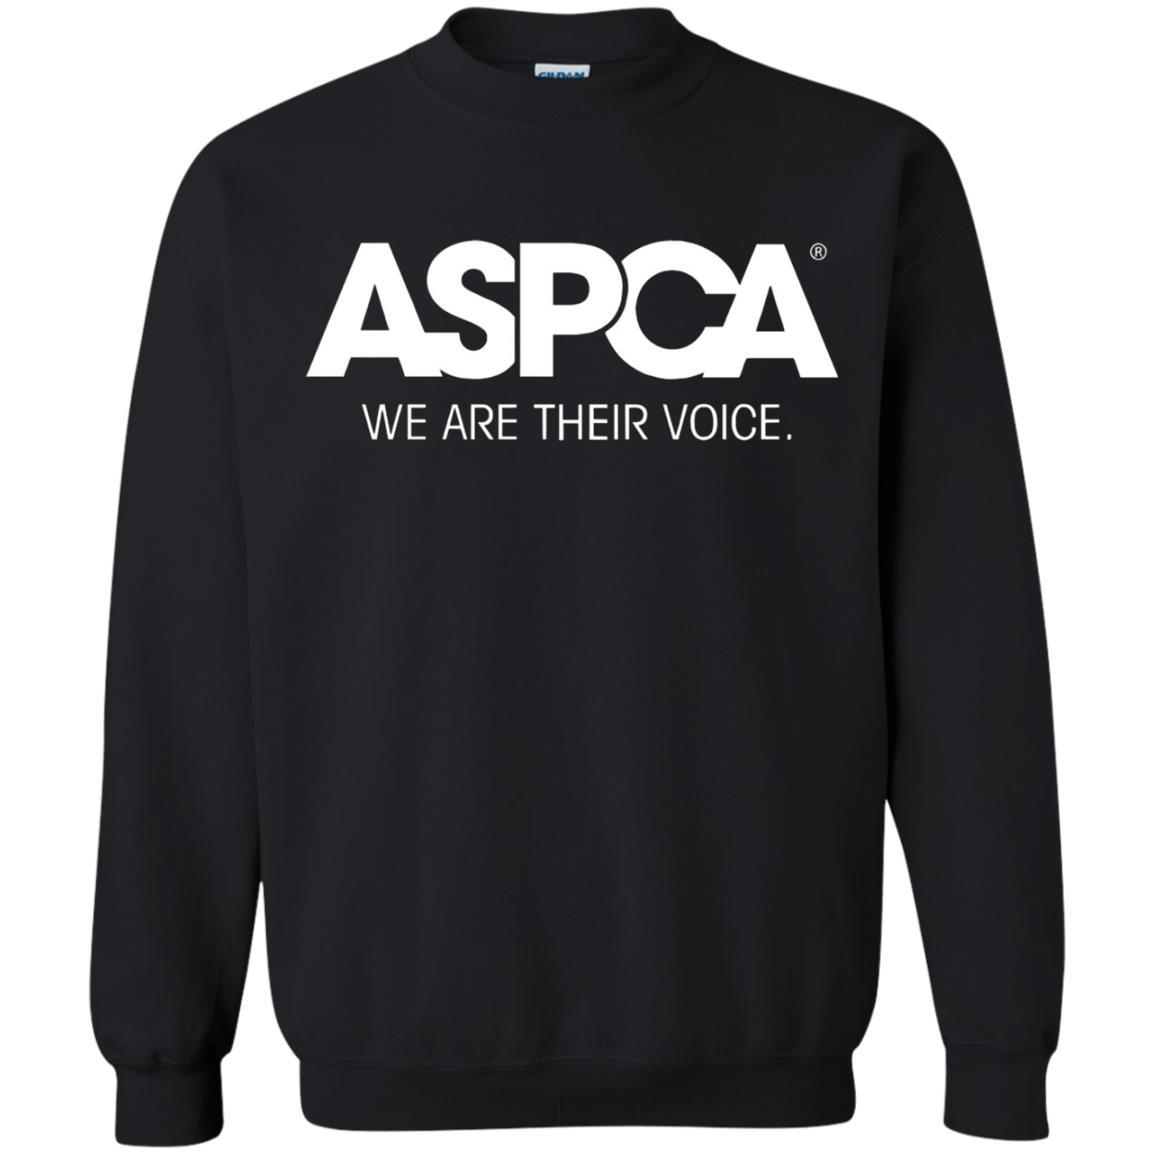 ASPCA Apparel - Crewneck Pullover Sweatshirt Black / 5XL